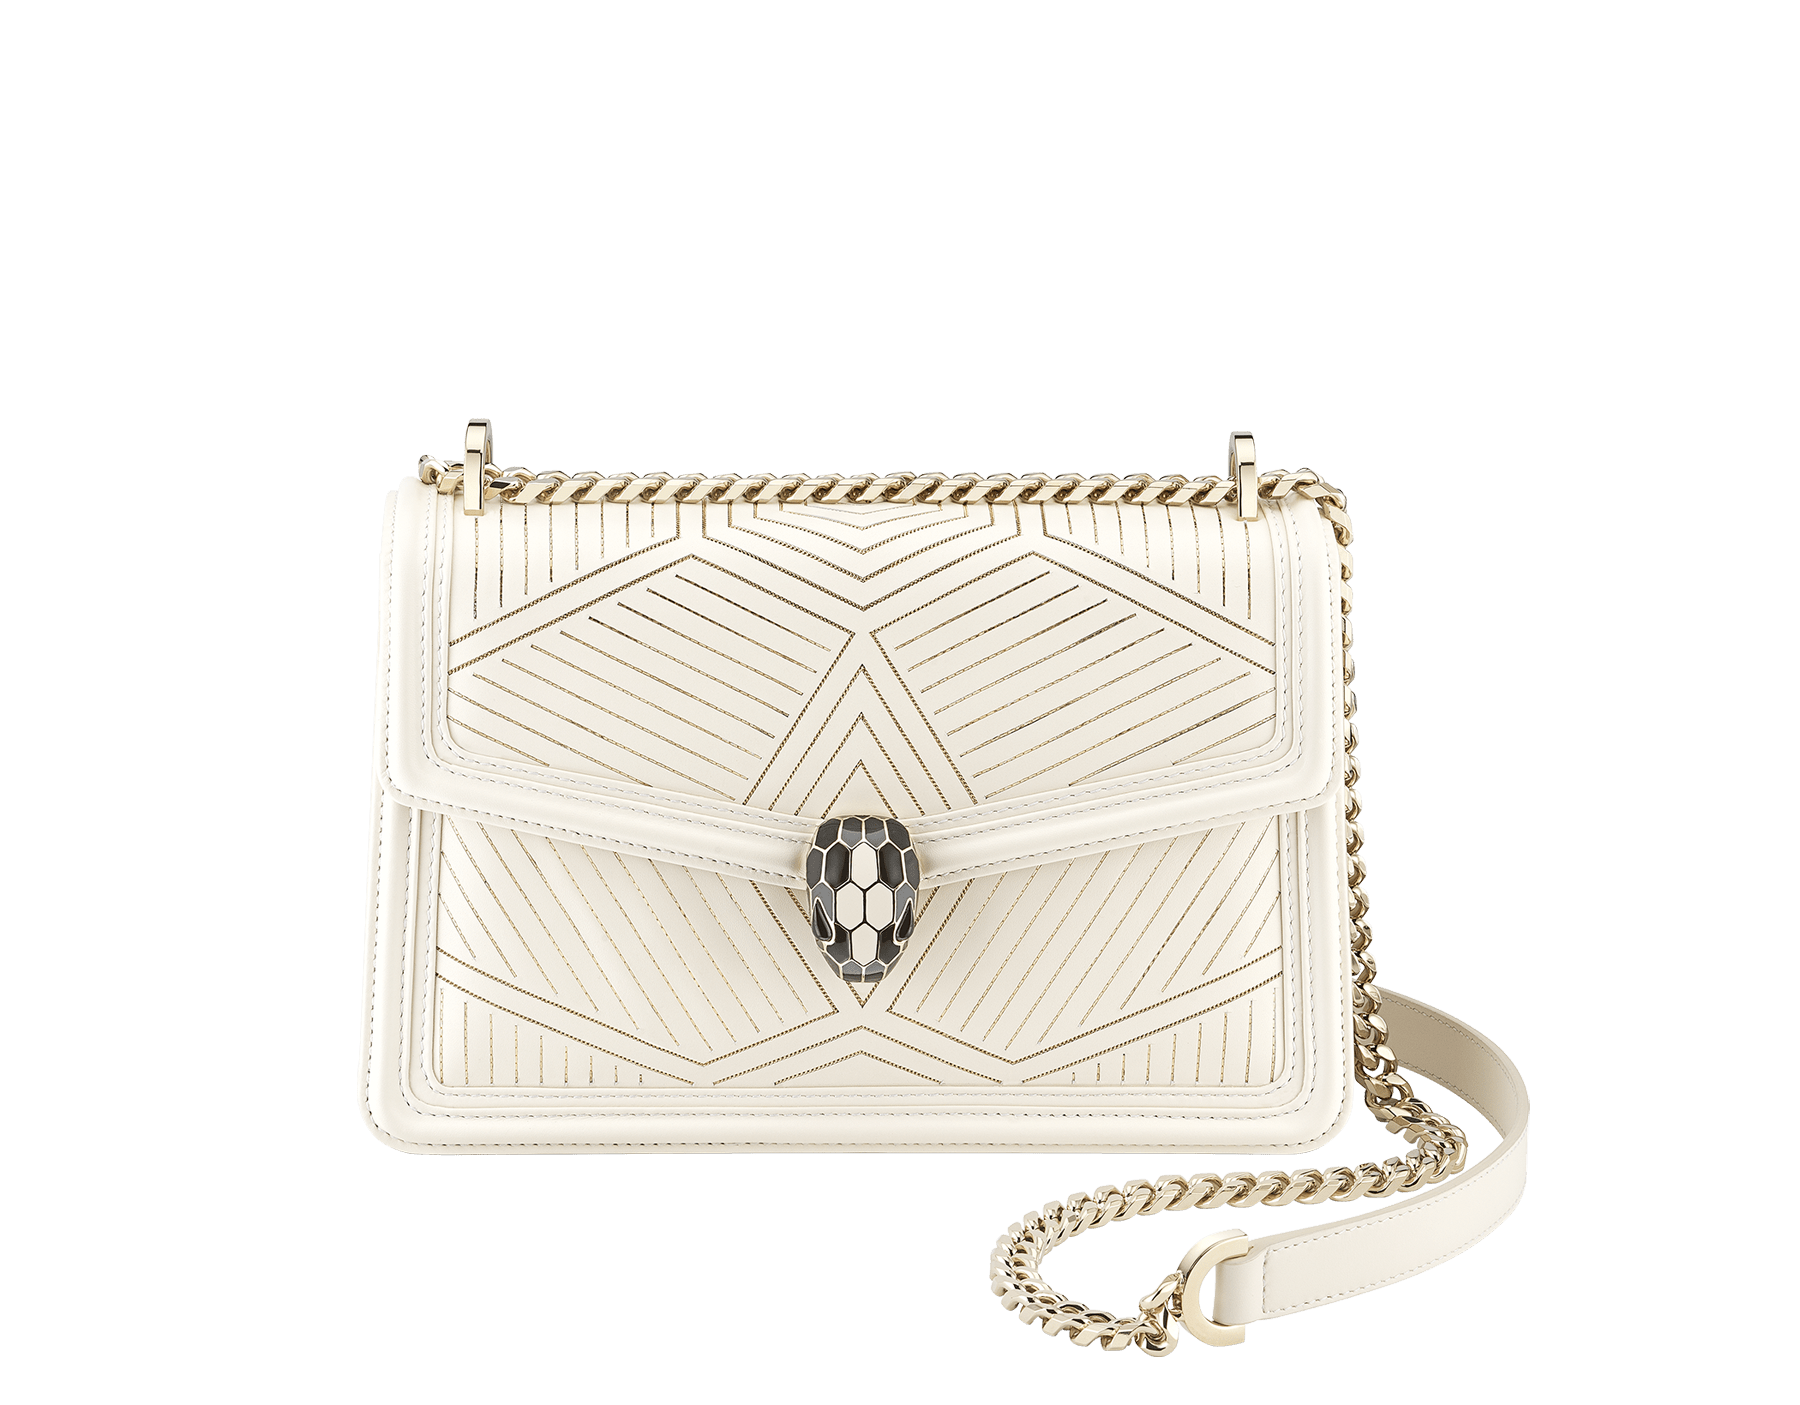 """Serpenti Diamond Blast"" shoulder bag in white agate calf leather, featuring a Whispy Chain motif in light gold finishing. Iconic snakehead closure in light gold plated brass enriched with black and white agate enamel and black onyx eyes. 922-WC image 1"